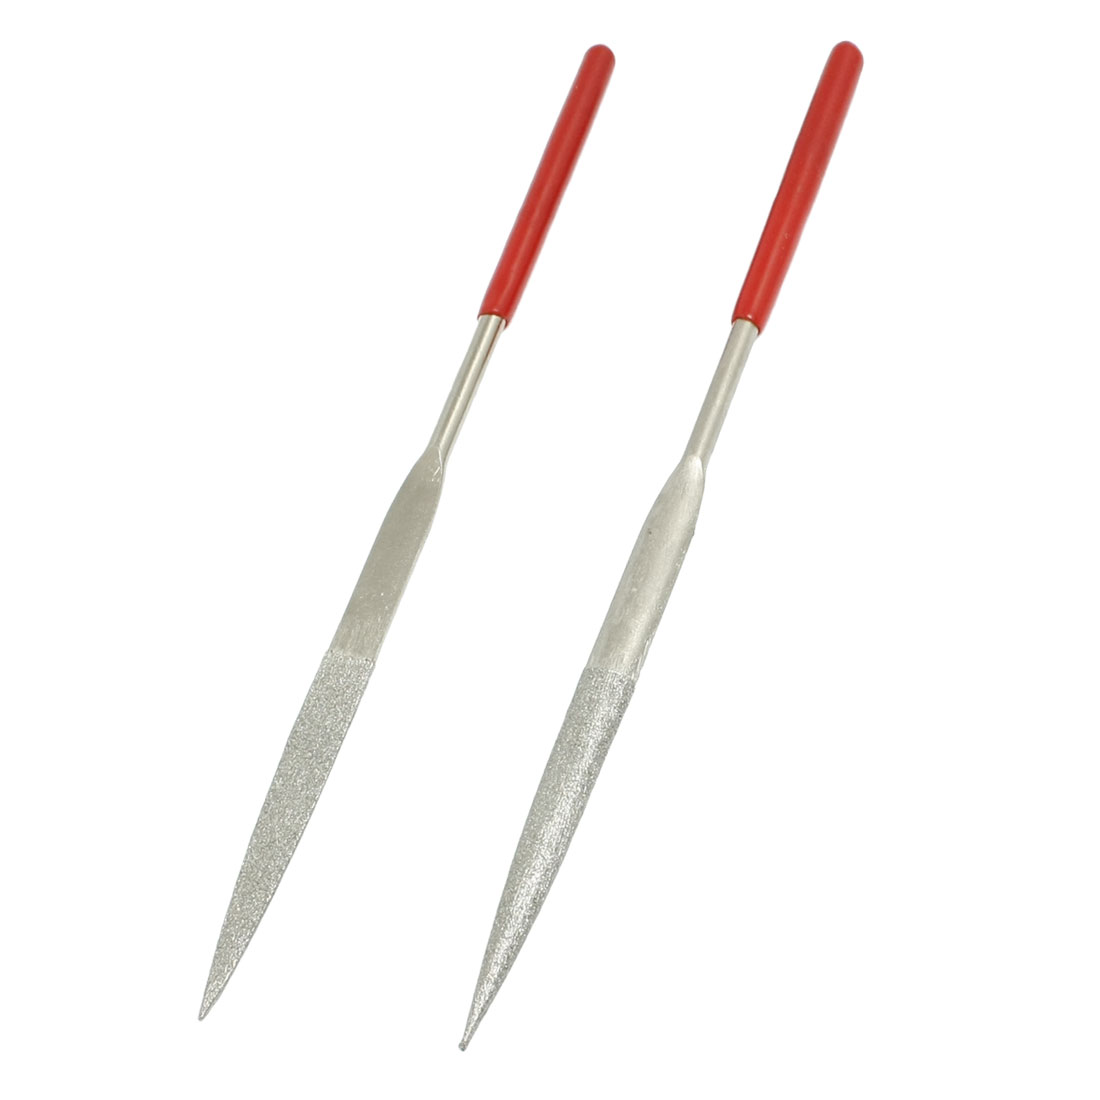 163mm Long Craft Making Hand Tool Half Round Needle Files 2 Pcs